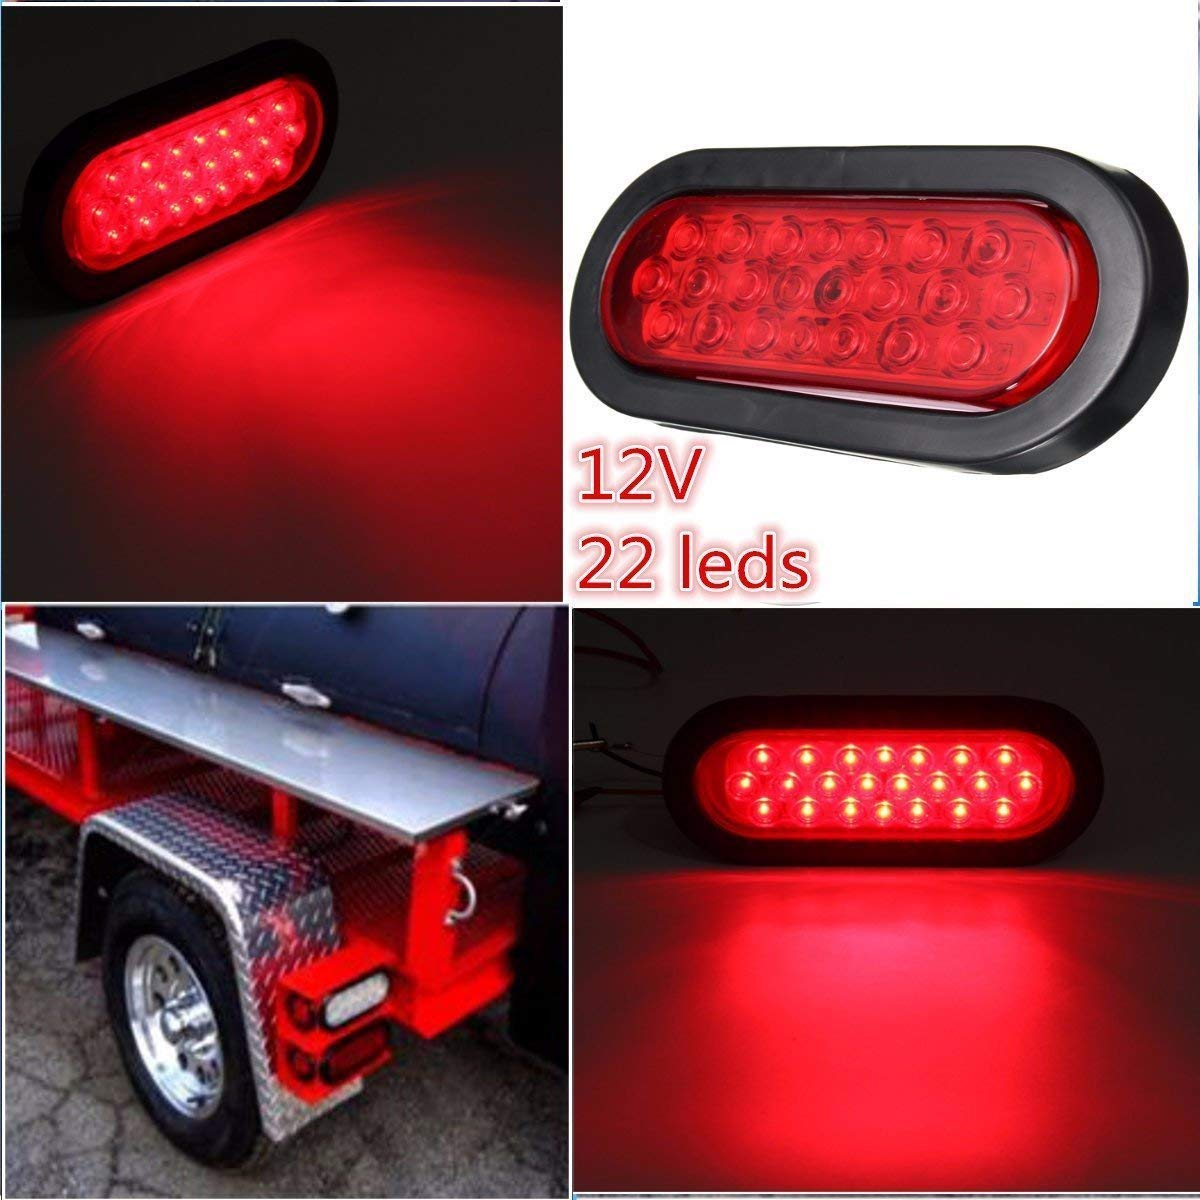 Ambother 6 22 Led Oval Trailer Lights Stop Turn Also Tail Along With Wiring Signal Brake Marker Light Flush Mount For Truck Trail Bus 12v Red Pack Of